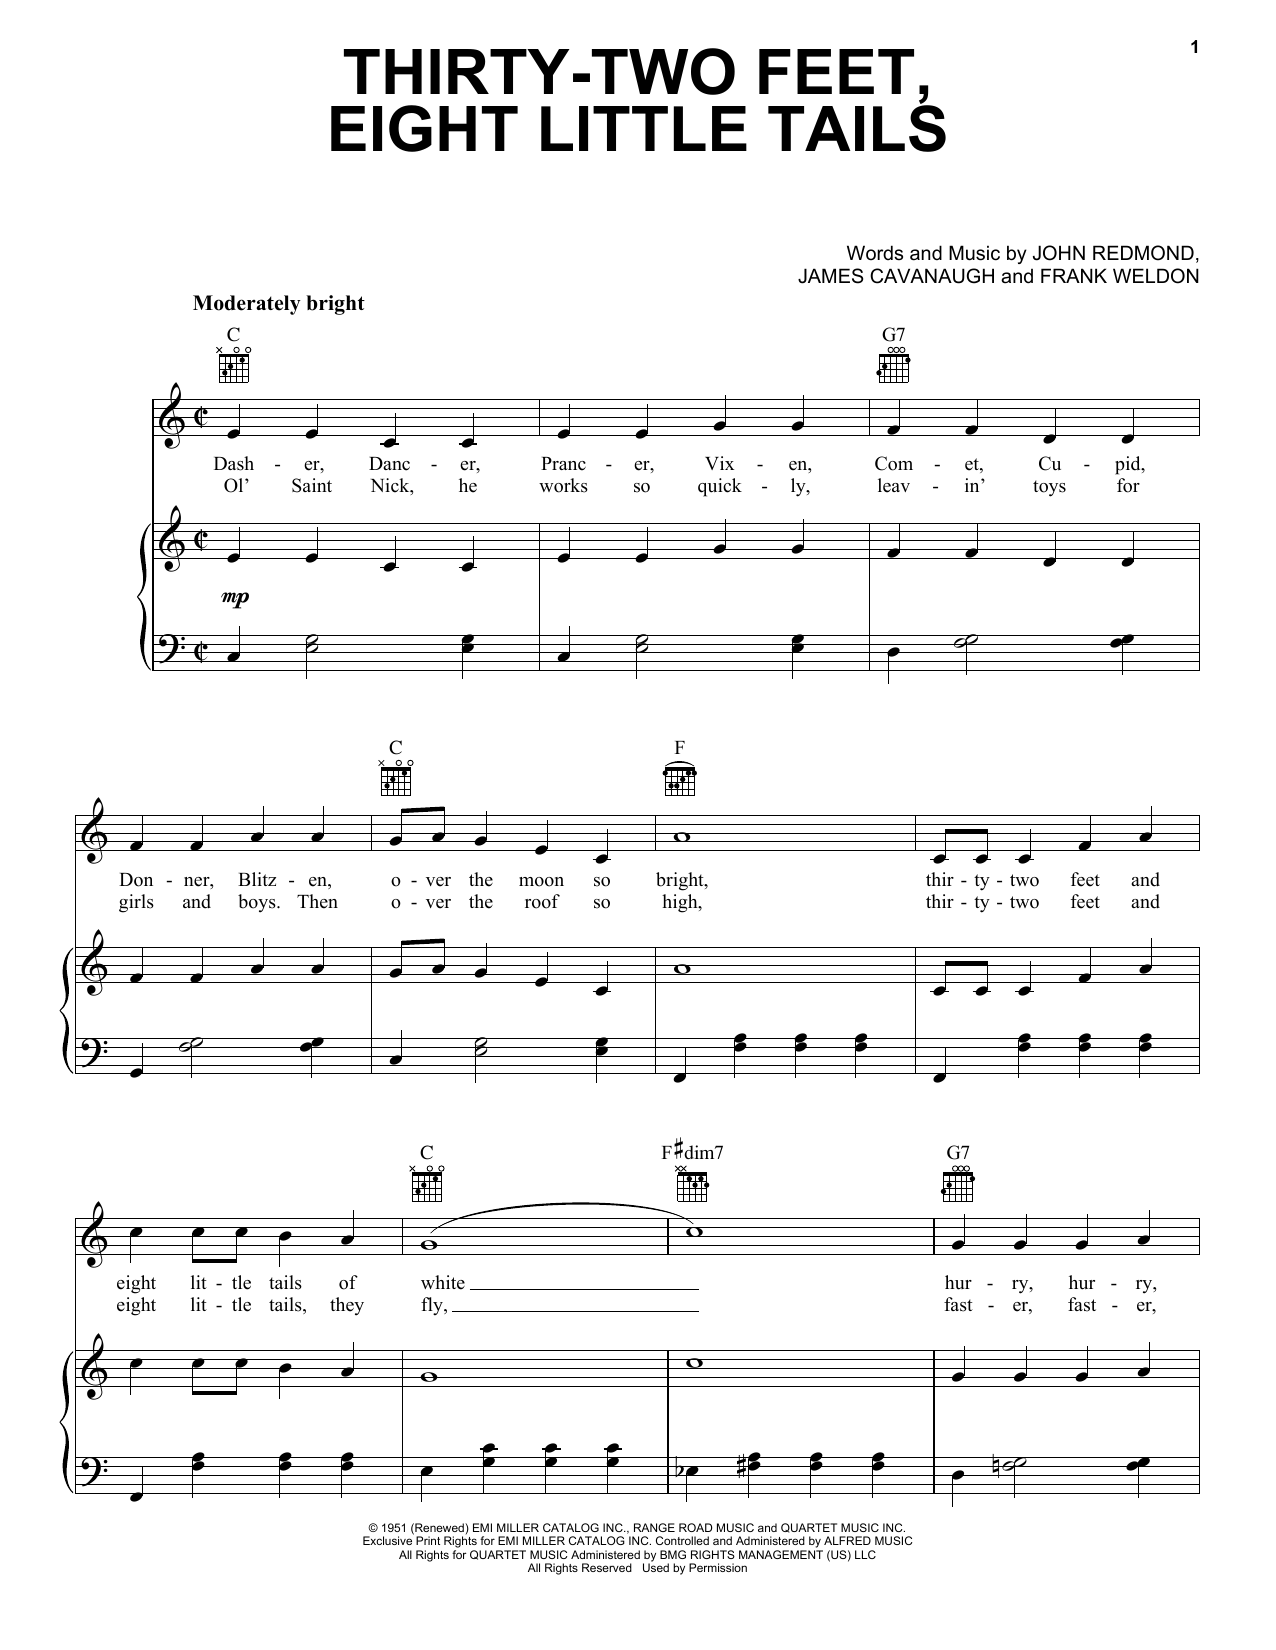 Gene Autry Thirty-Two Feet, Eight Little Tails sheet music notes and chords. Download Printable PDF.